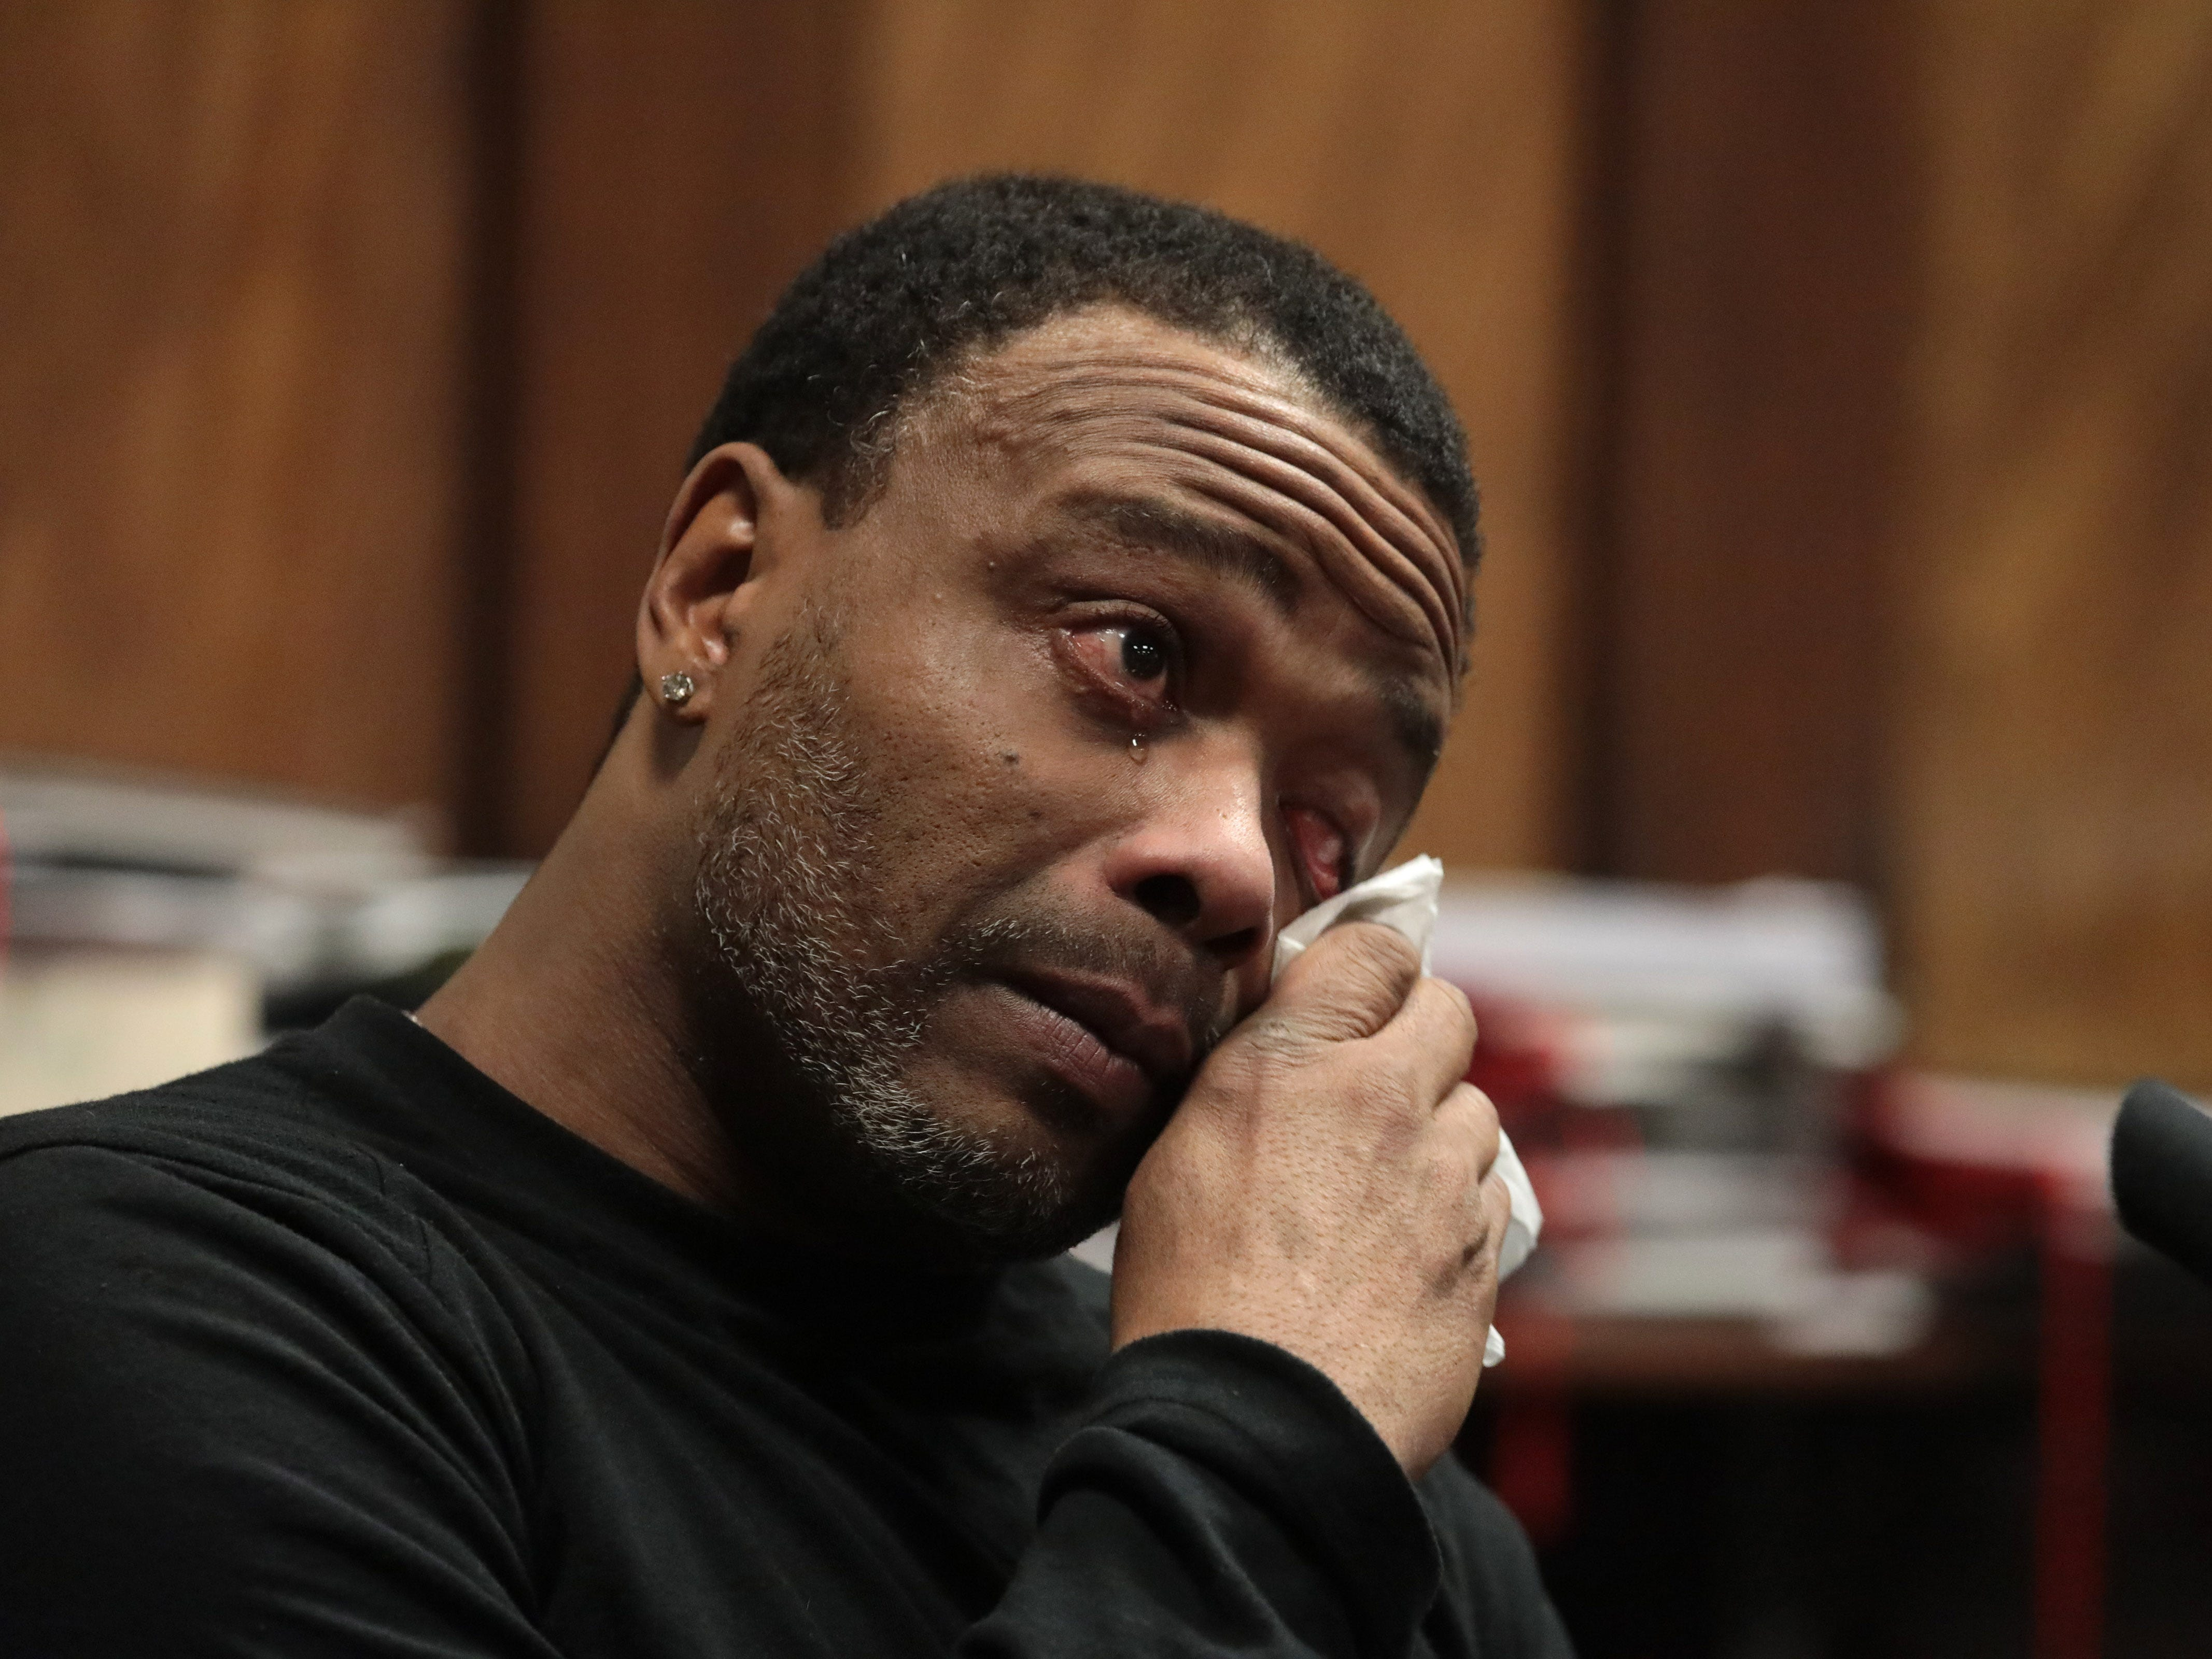 Edward Nance, who alleged he was roughed up by Officer Jason Van Dyke during a traffic stop on the South Side in 2007, testifies at Van Dyke's sentencing hearing at the Leighton Criminal Court Building Jan. 18, 2019 in Chicago, Illinois. Van Dyke was found guilty in October 2018 of second-degree murder and 16 counts of aggravated battery in the on-duty shooting of McDonald.